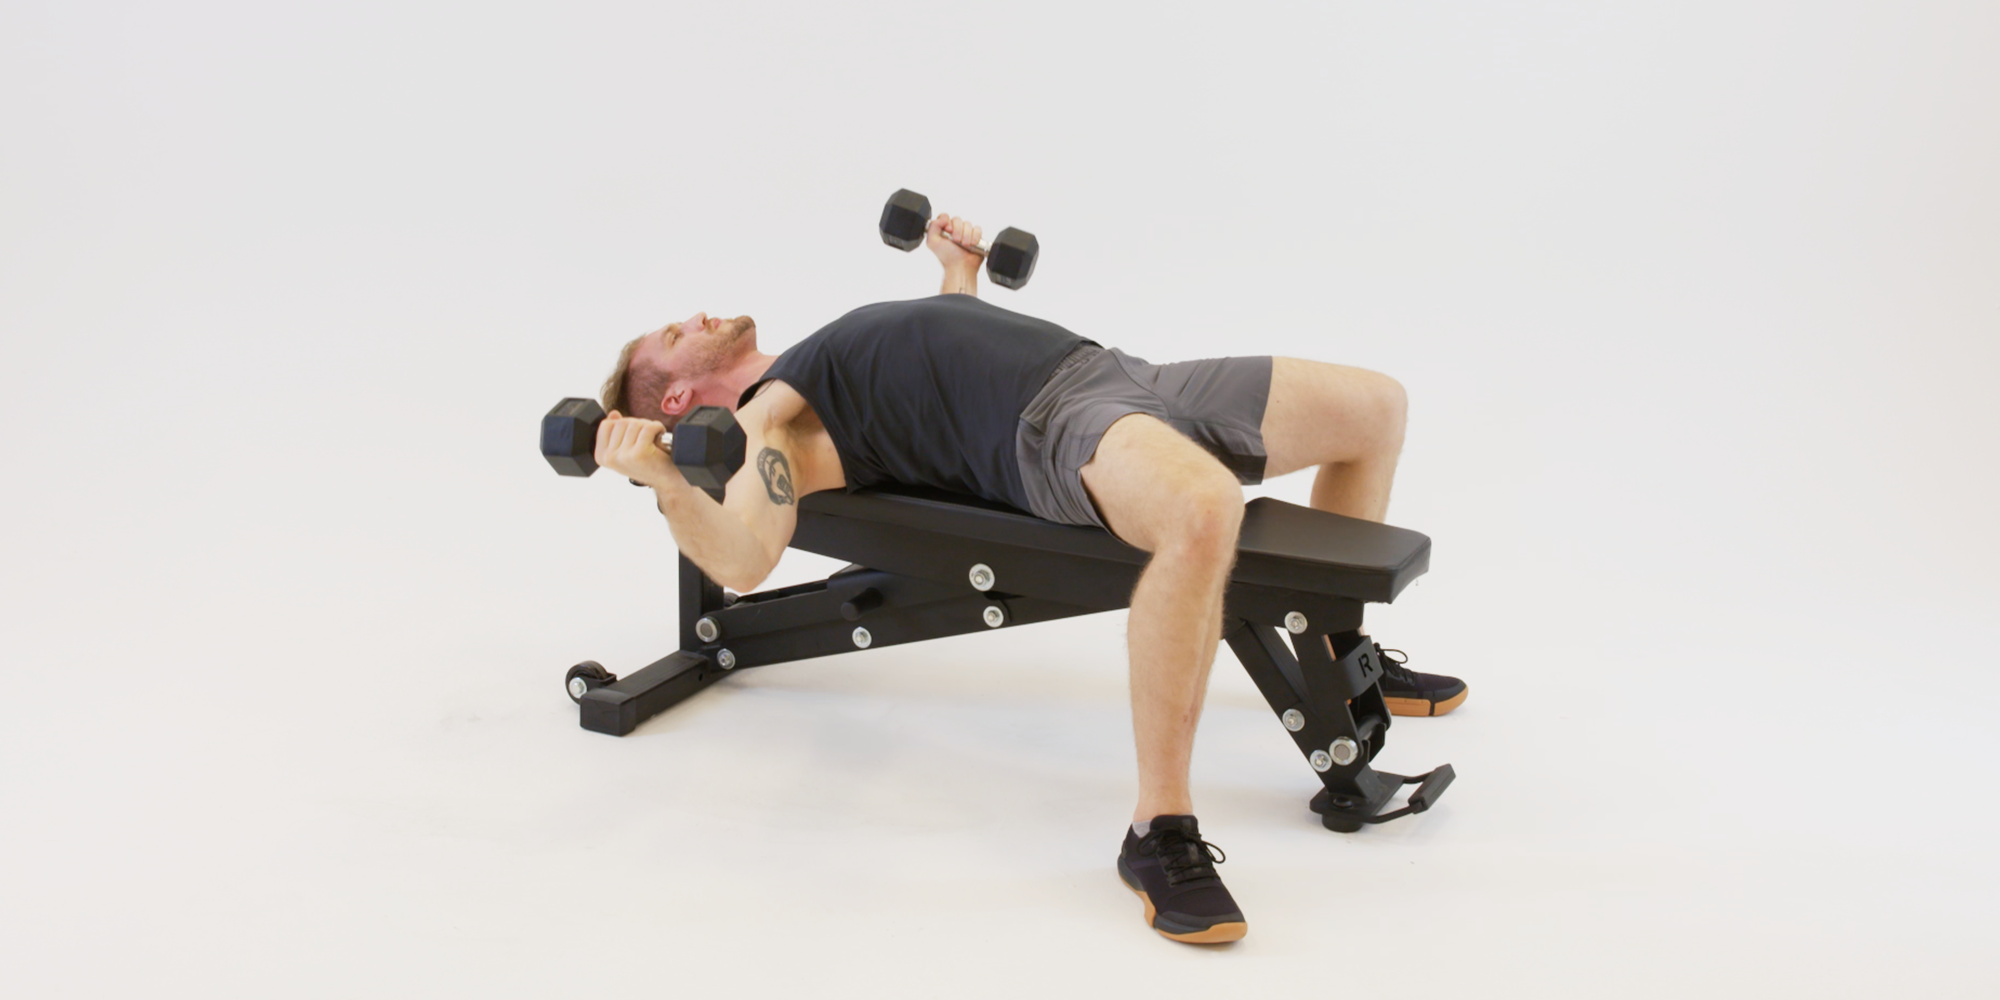 How To Master The Dumbbell Chest Fly Exercise To Get Stronger